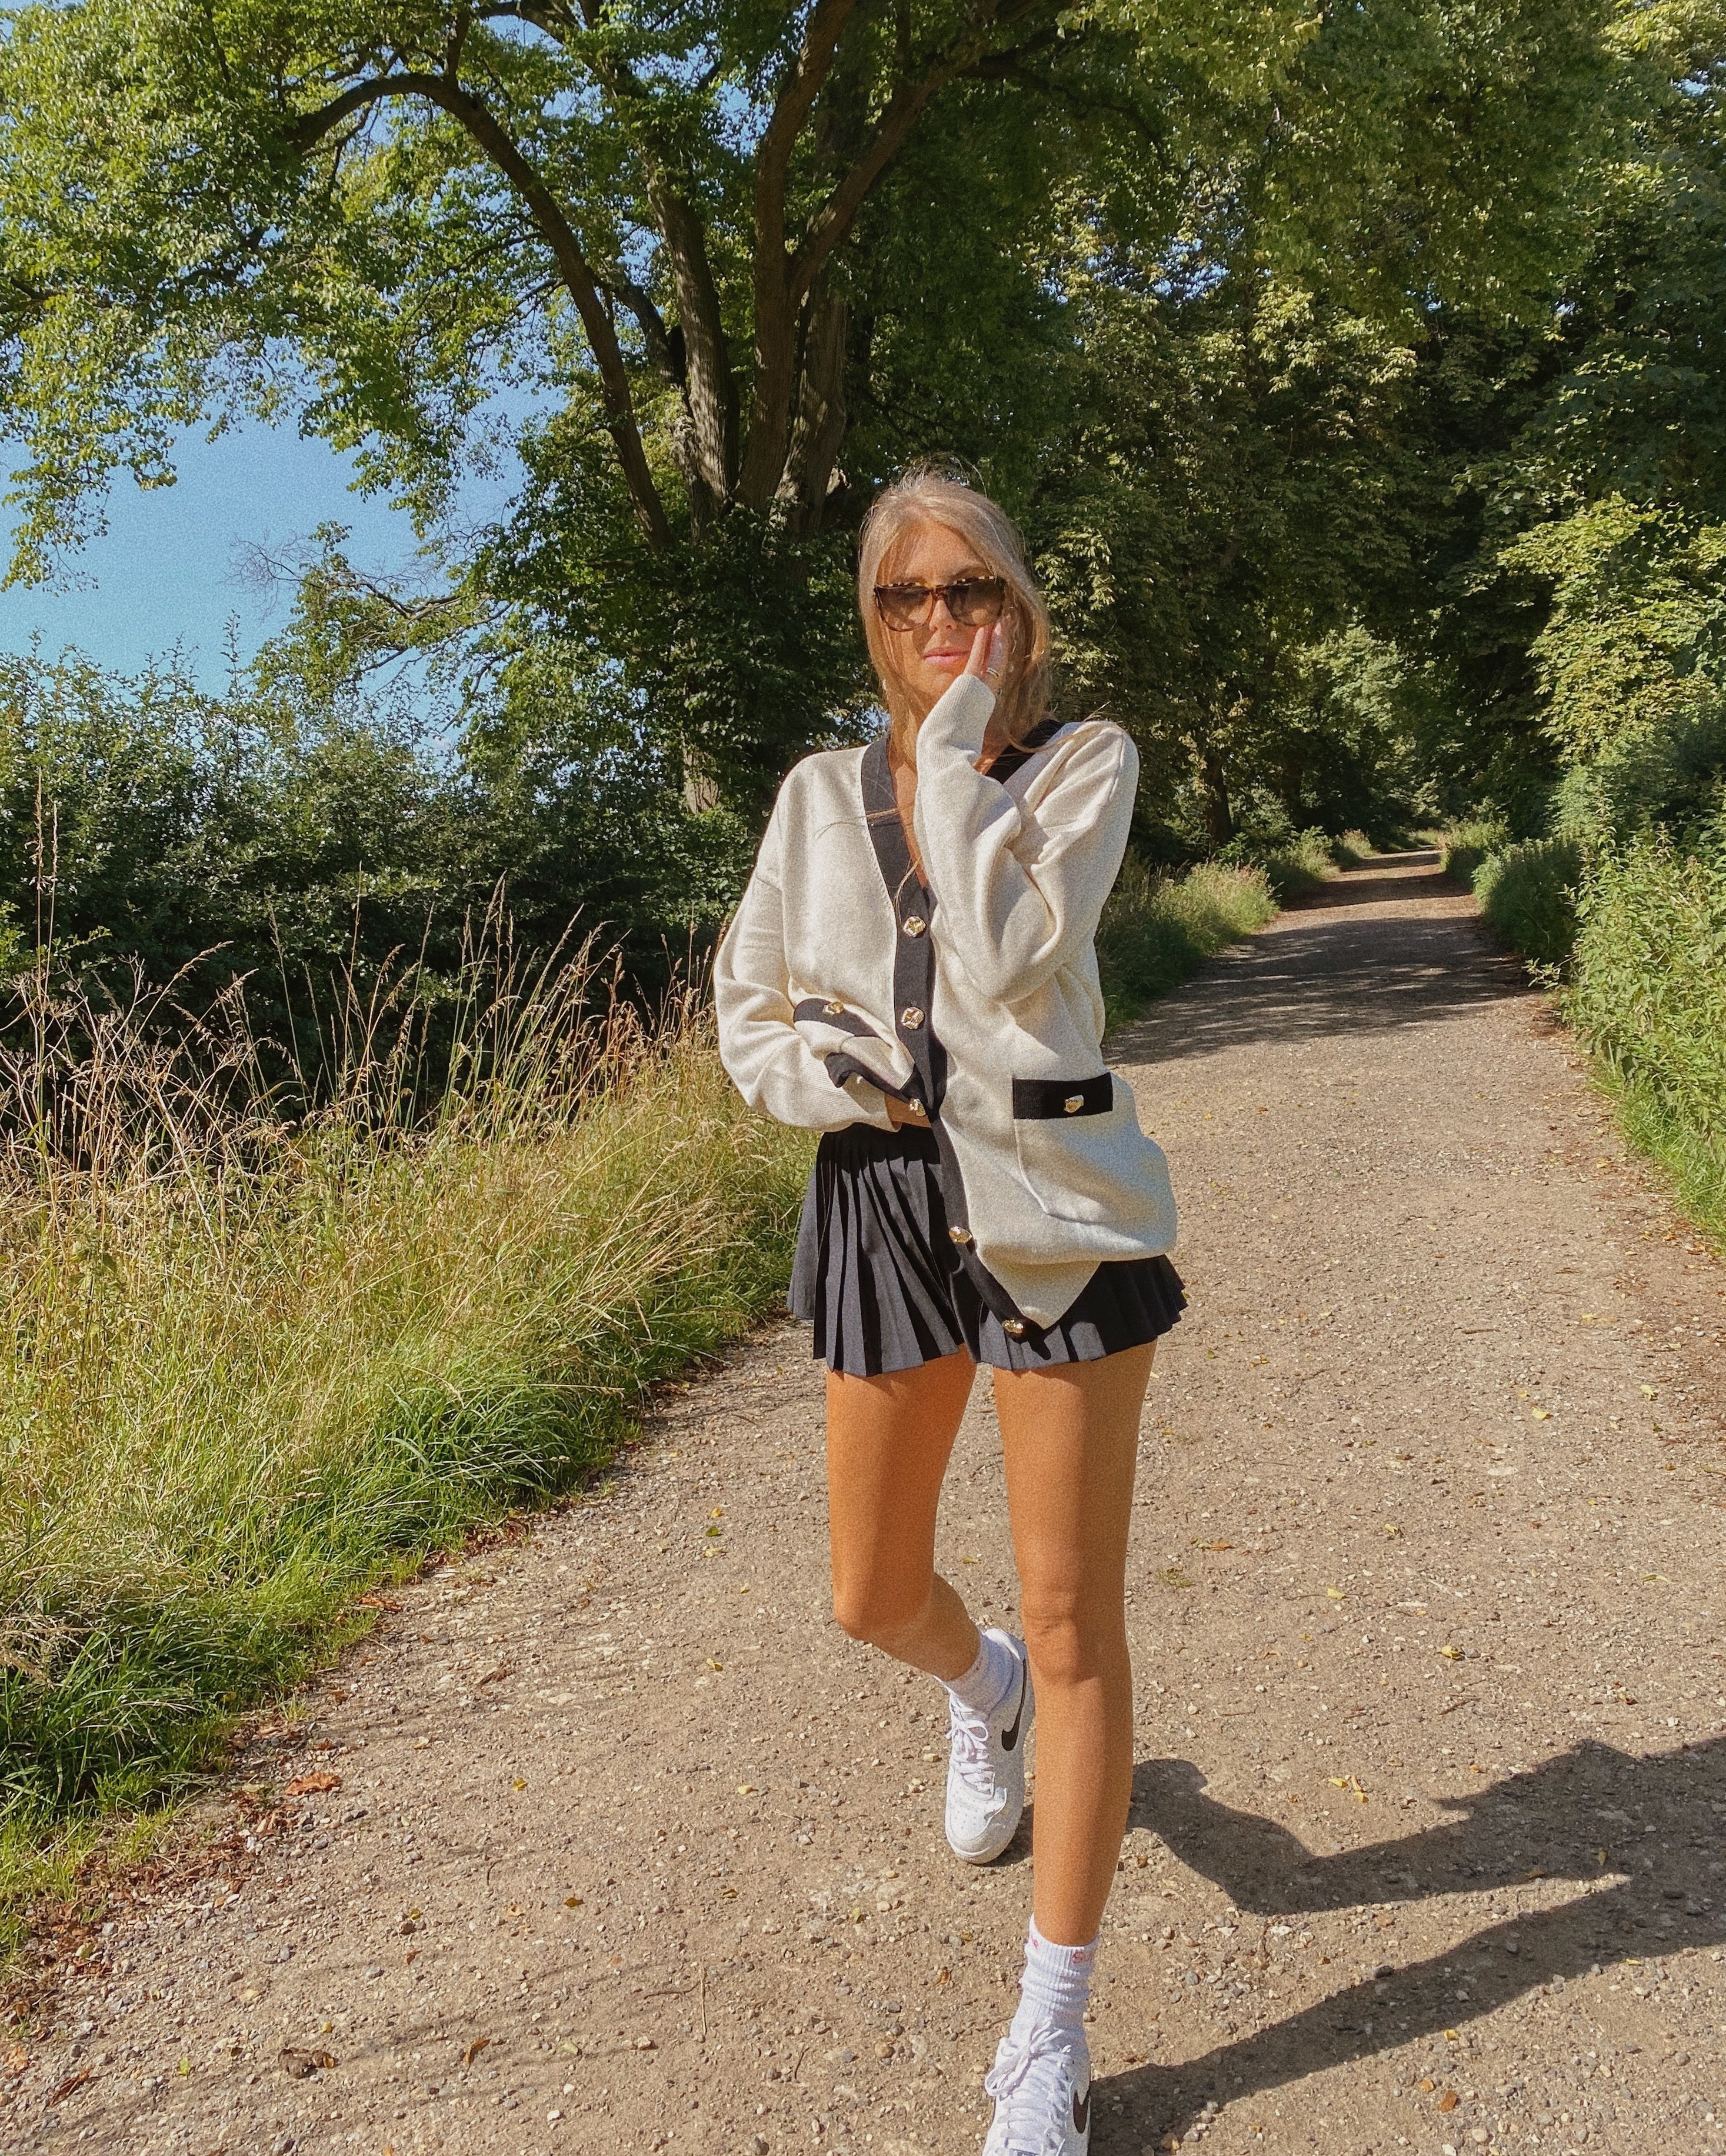 Nike Tennis Skirt Outfit Ideas Love Style Mindfulness Fashion Personal Style Blog